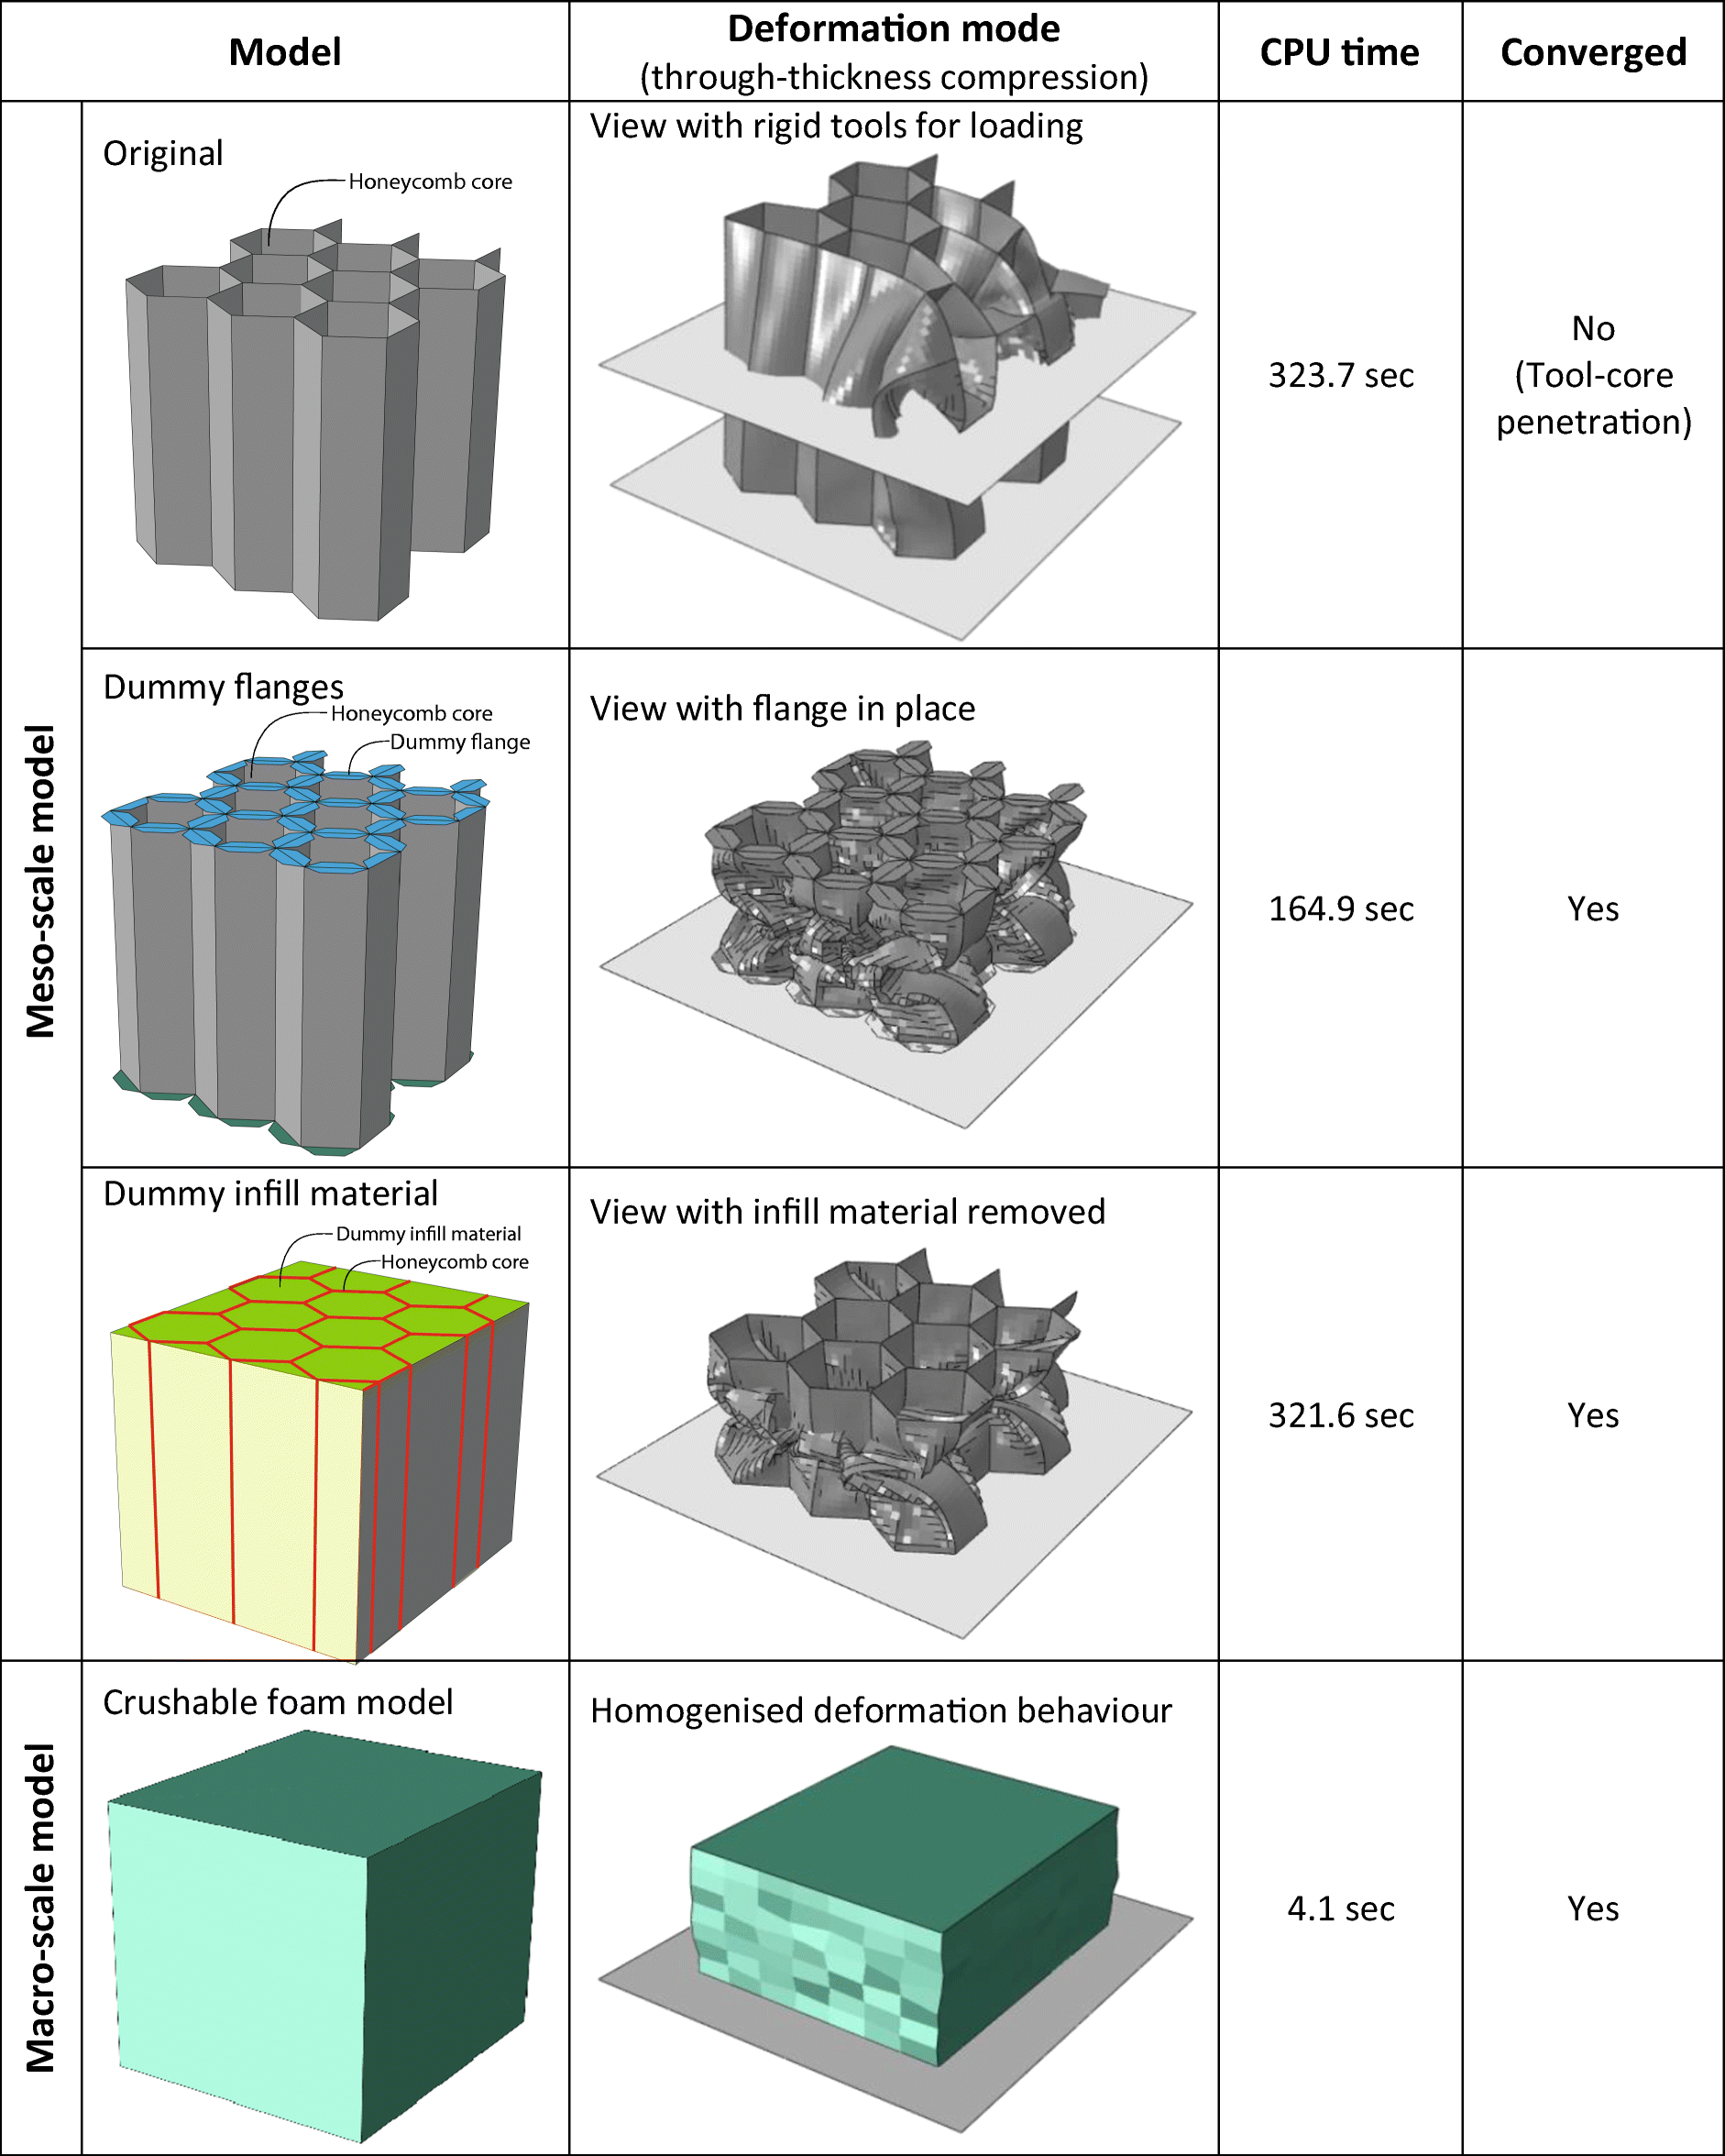 https://static-content.springer.com/image/art%3A10.1007%2Fs12289-019-01520-4/MediaObjects/12289_2019_1520_Tab2_HTML.png